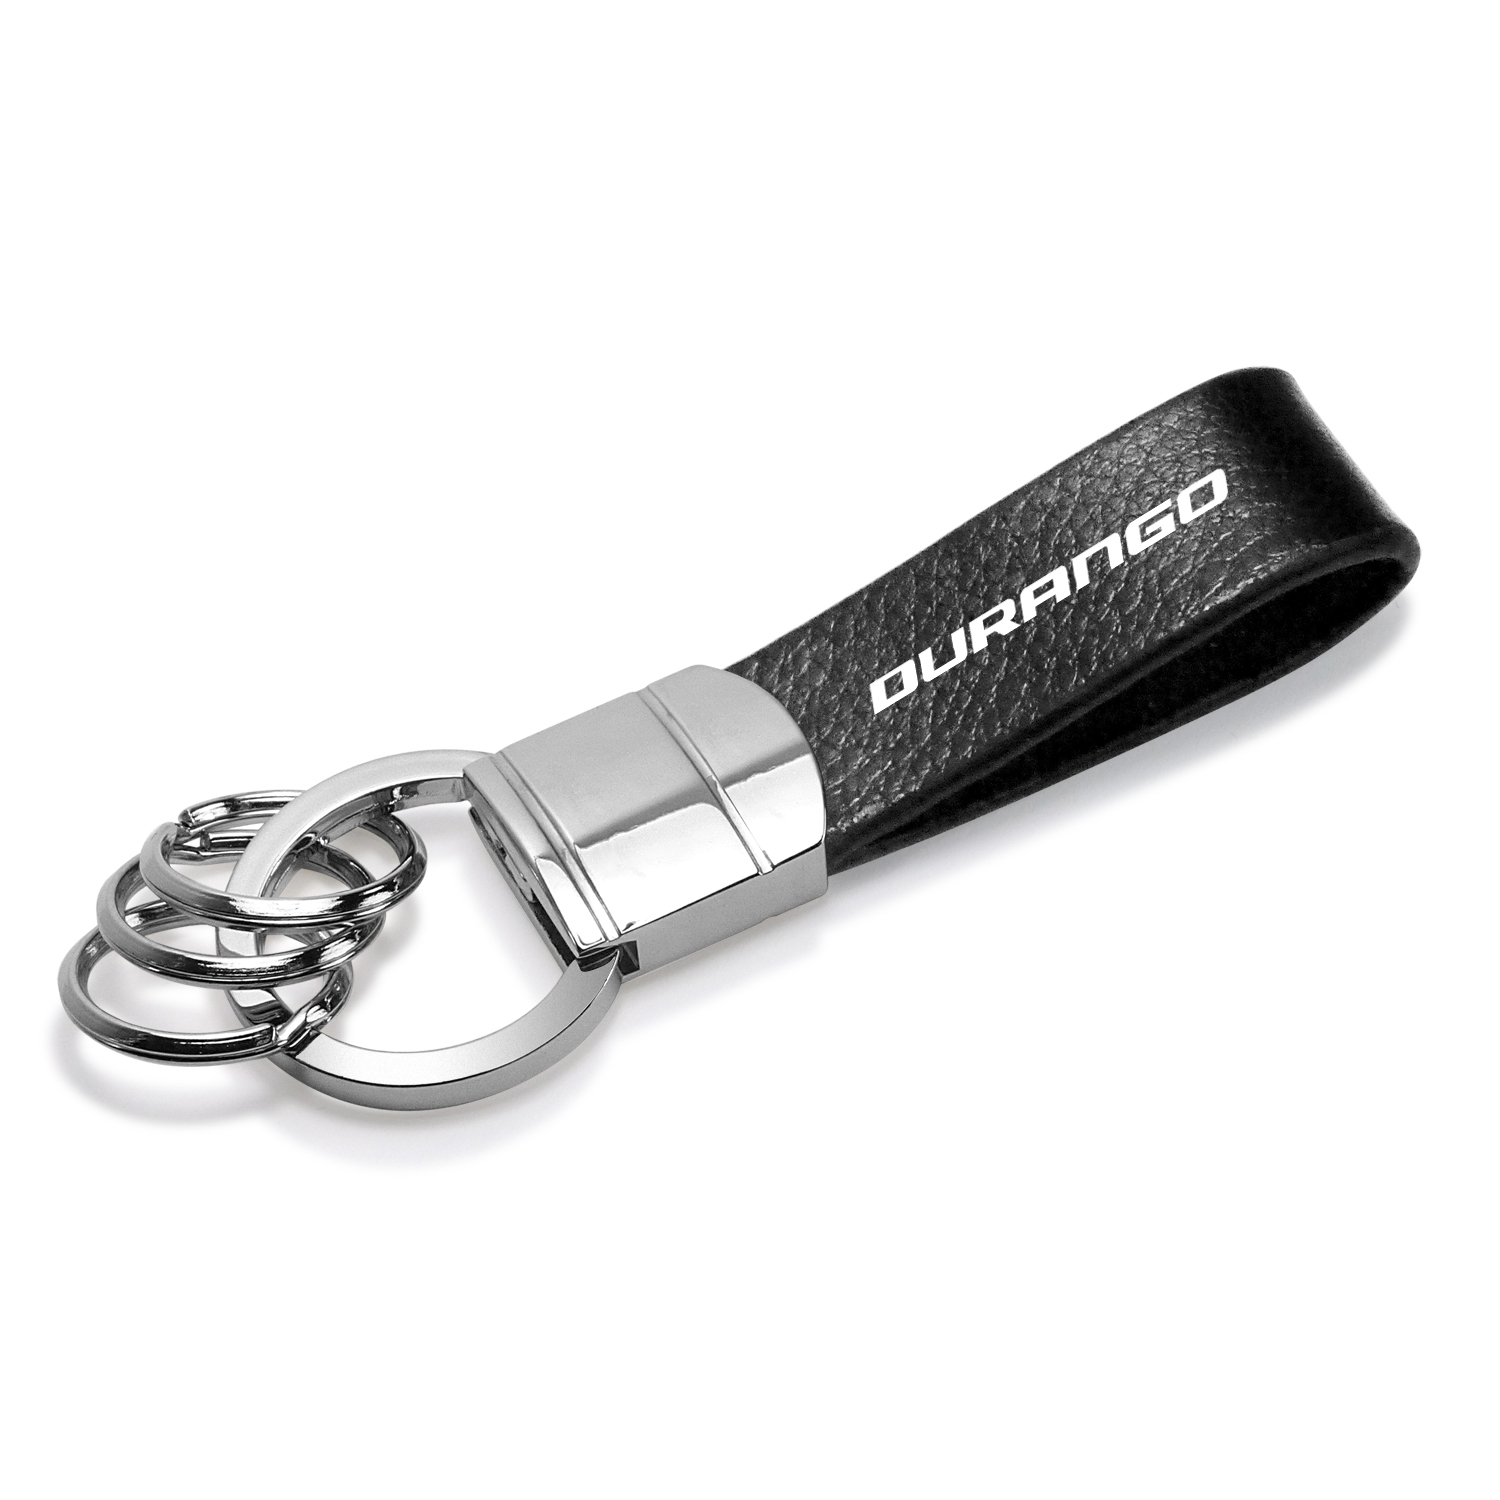 Dodge Durango Genuine Black Leather Strap Loop Key Chain